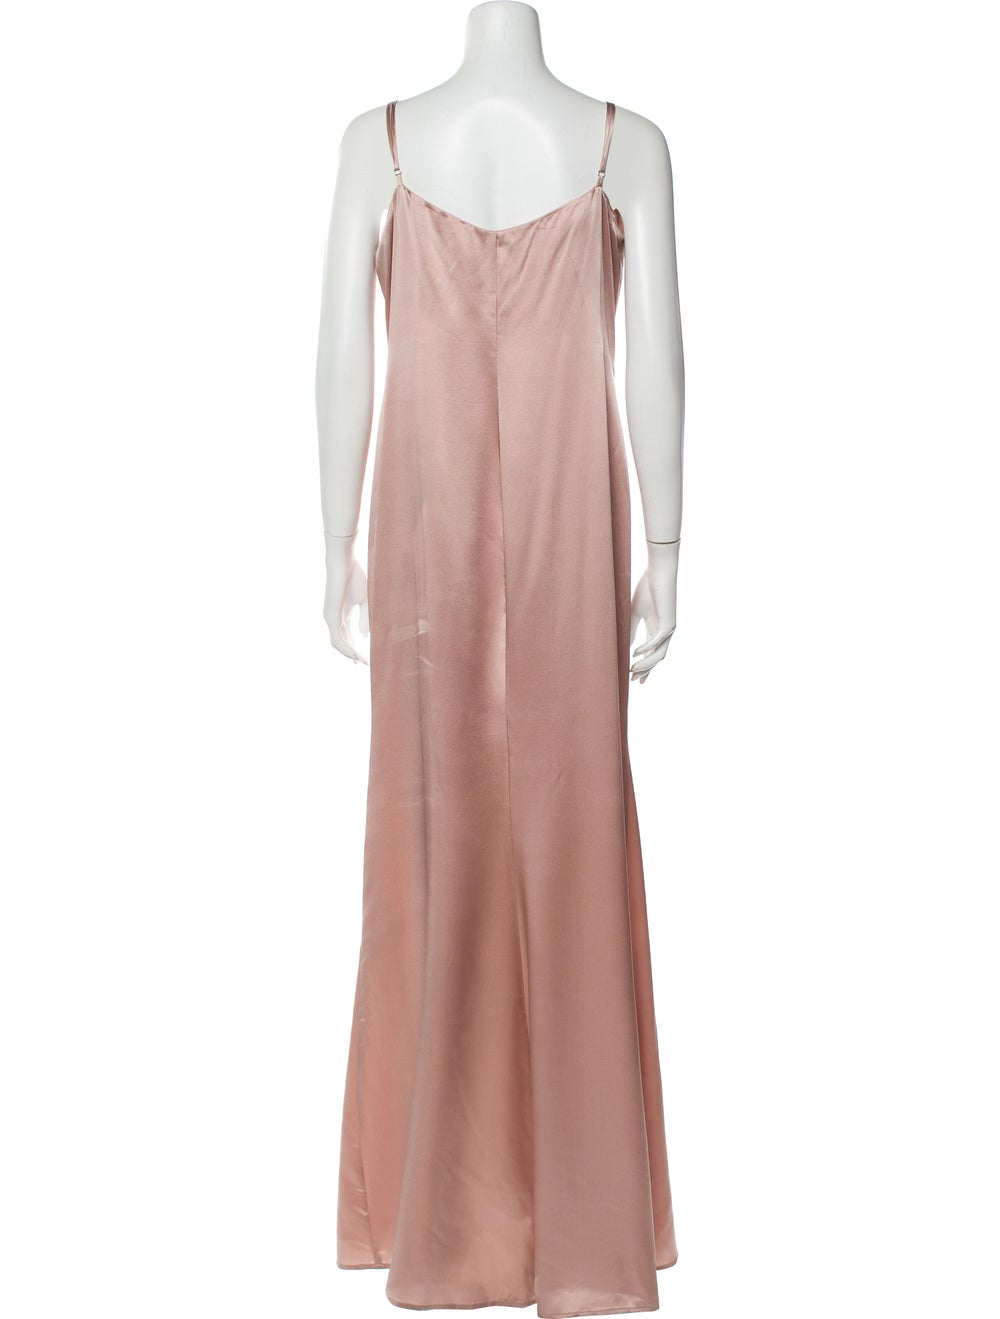 Reformation Silk Long Dress Pink - image 3